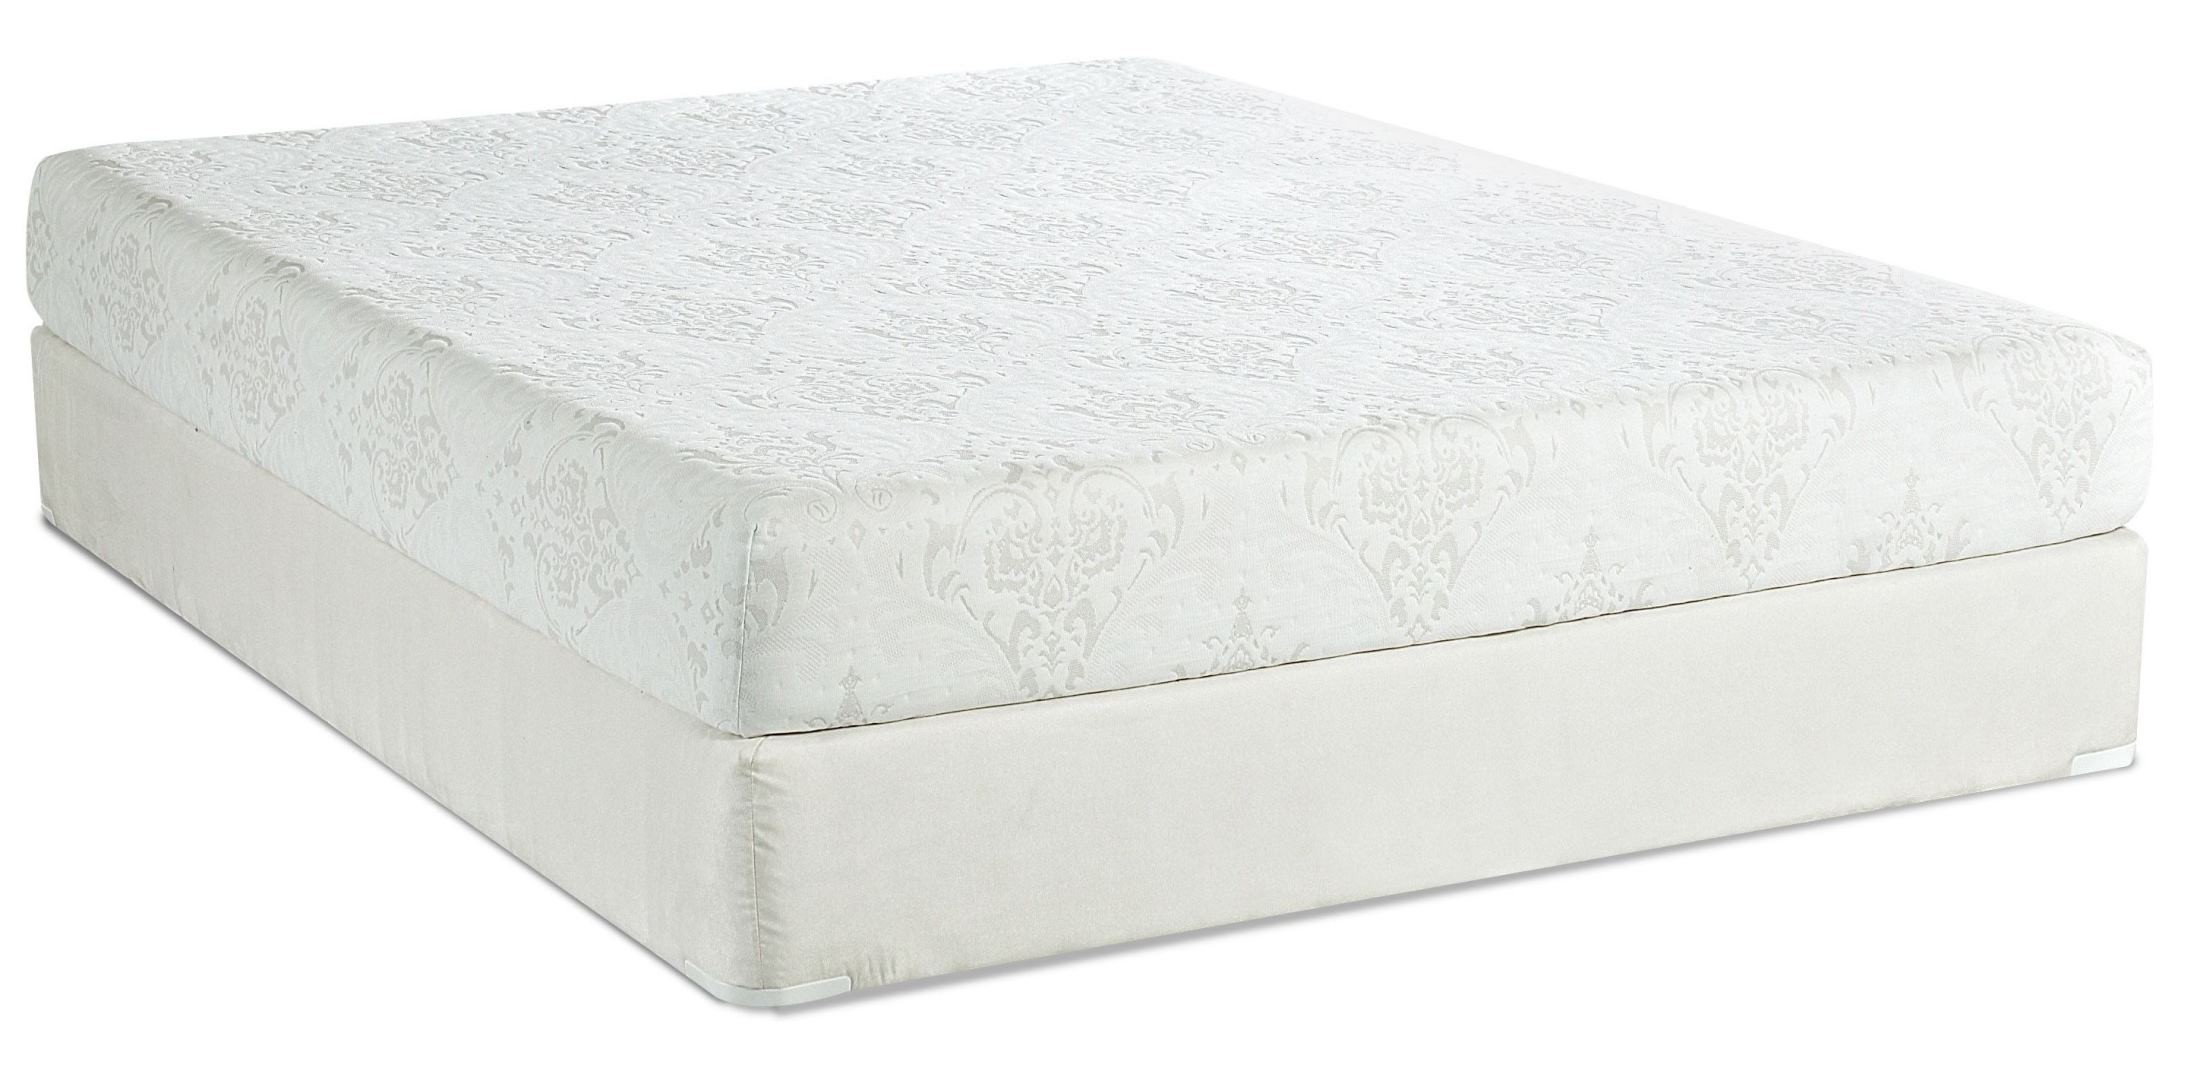 Hampton 8 Memory Foam Queen Mattress From Klaussner Hamptonqqmat Coleman Furniture